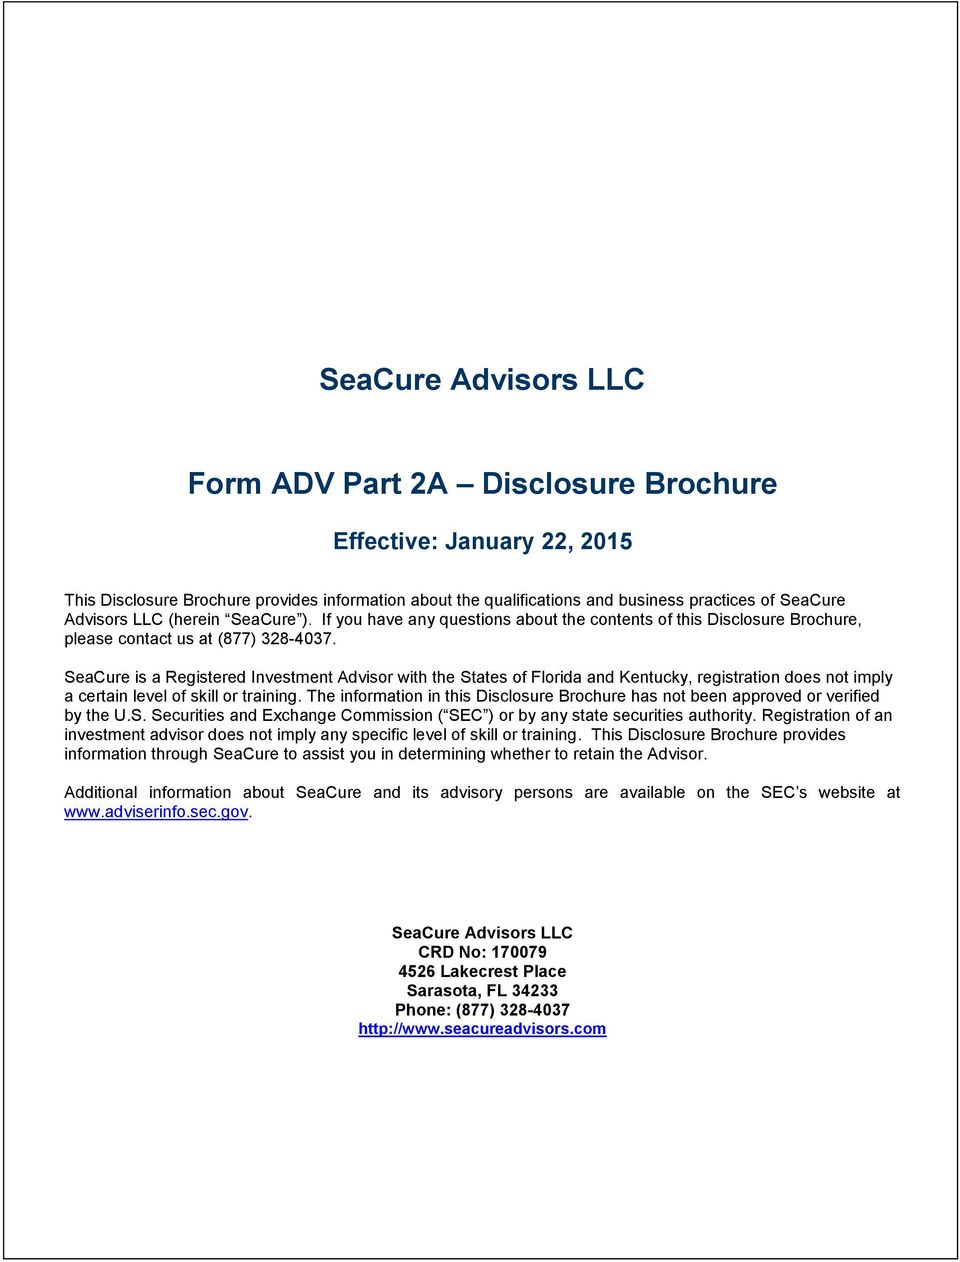 SeaCure is a Registered Investment Advisor with the States of Florida and Kentucky, registration does not imply a certain level of skill or training.